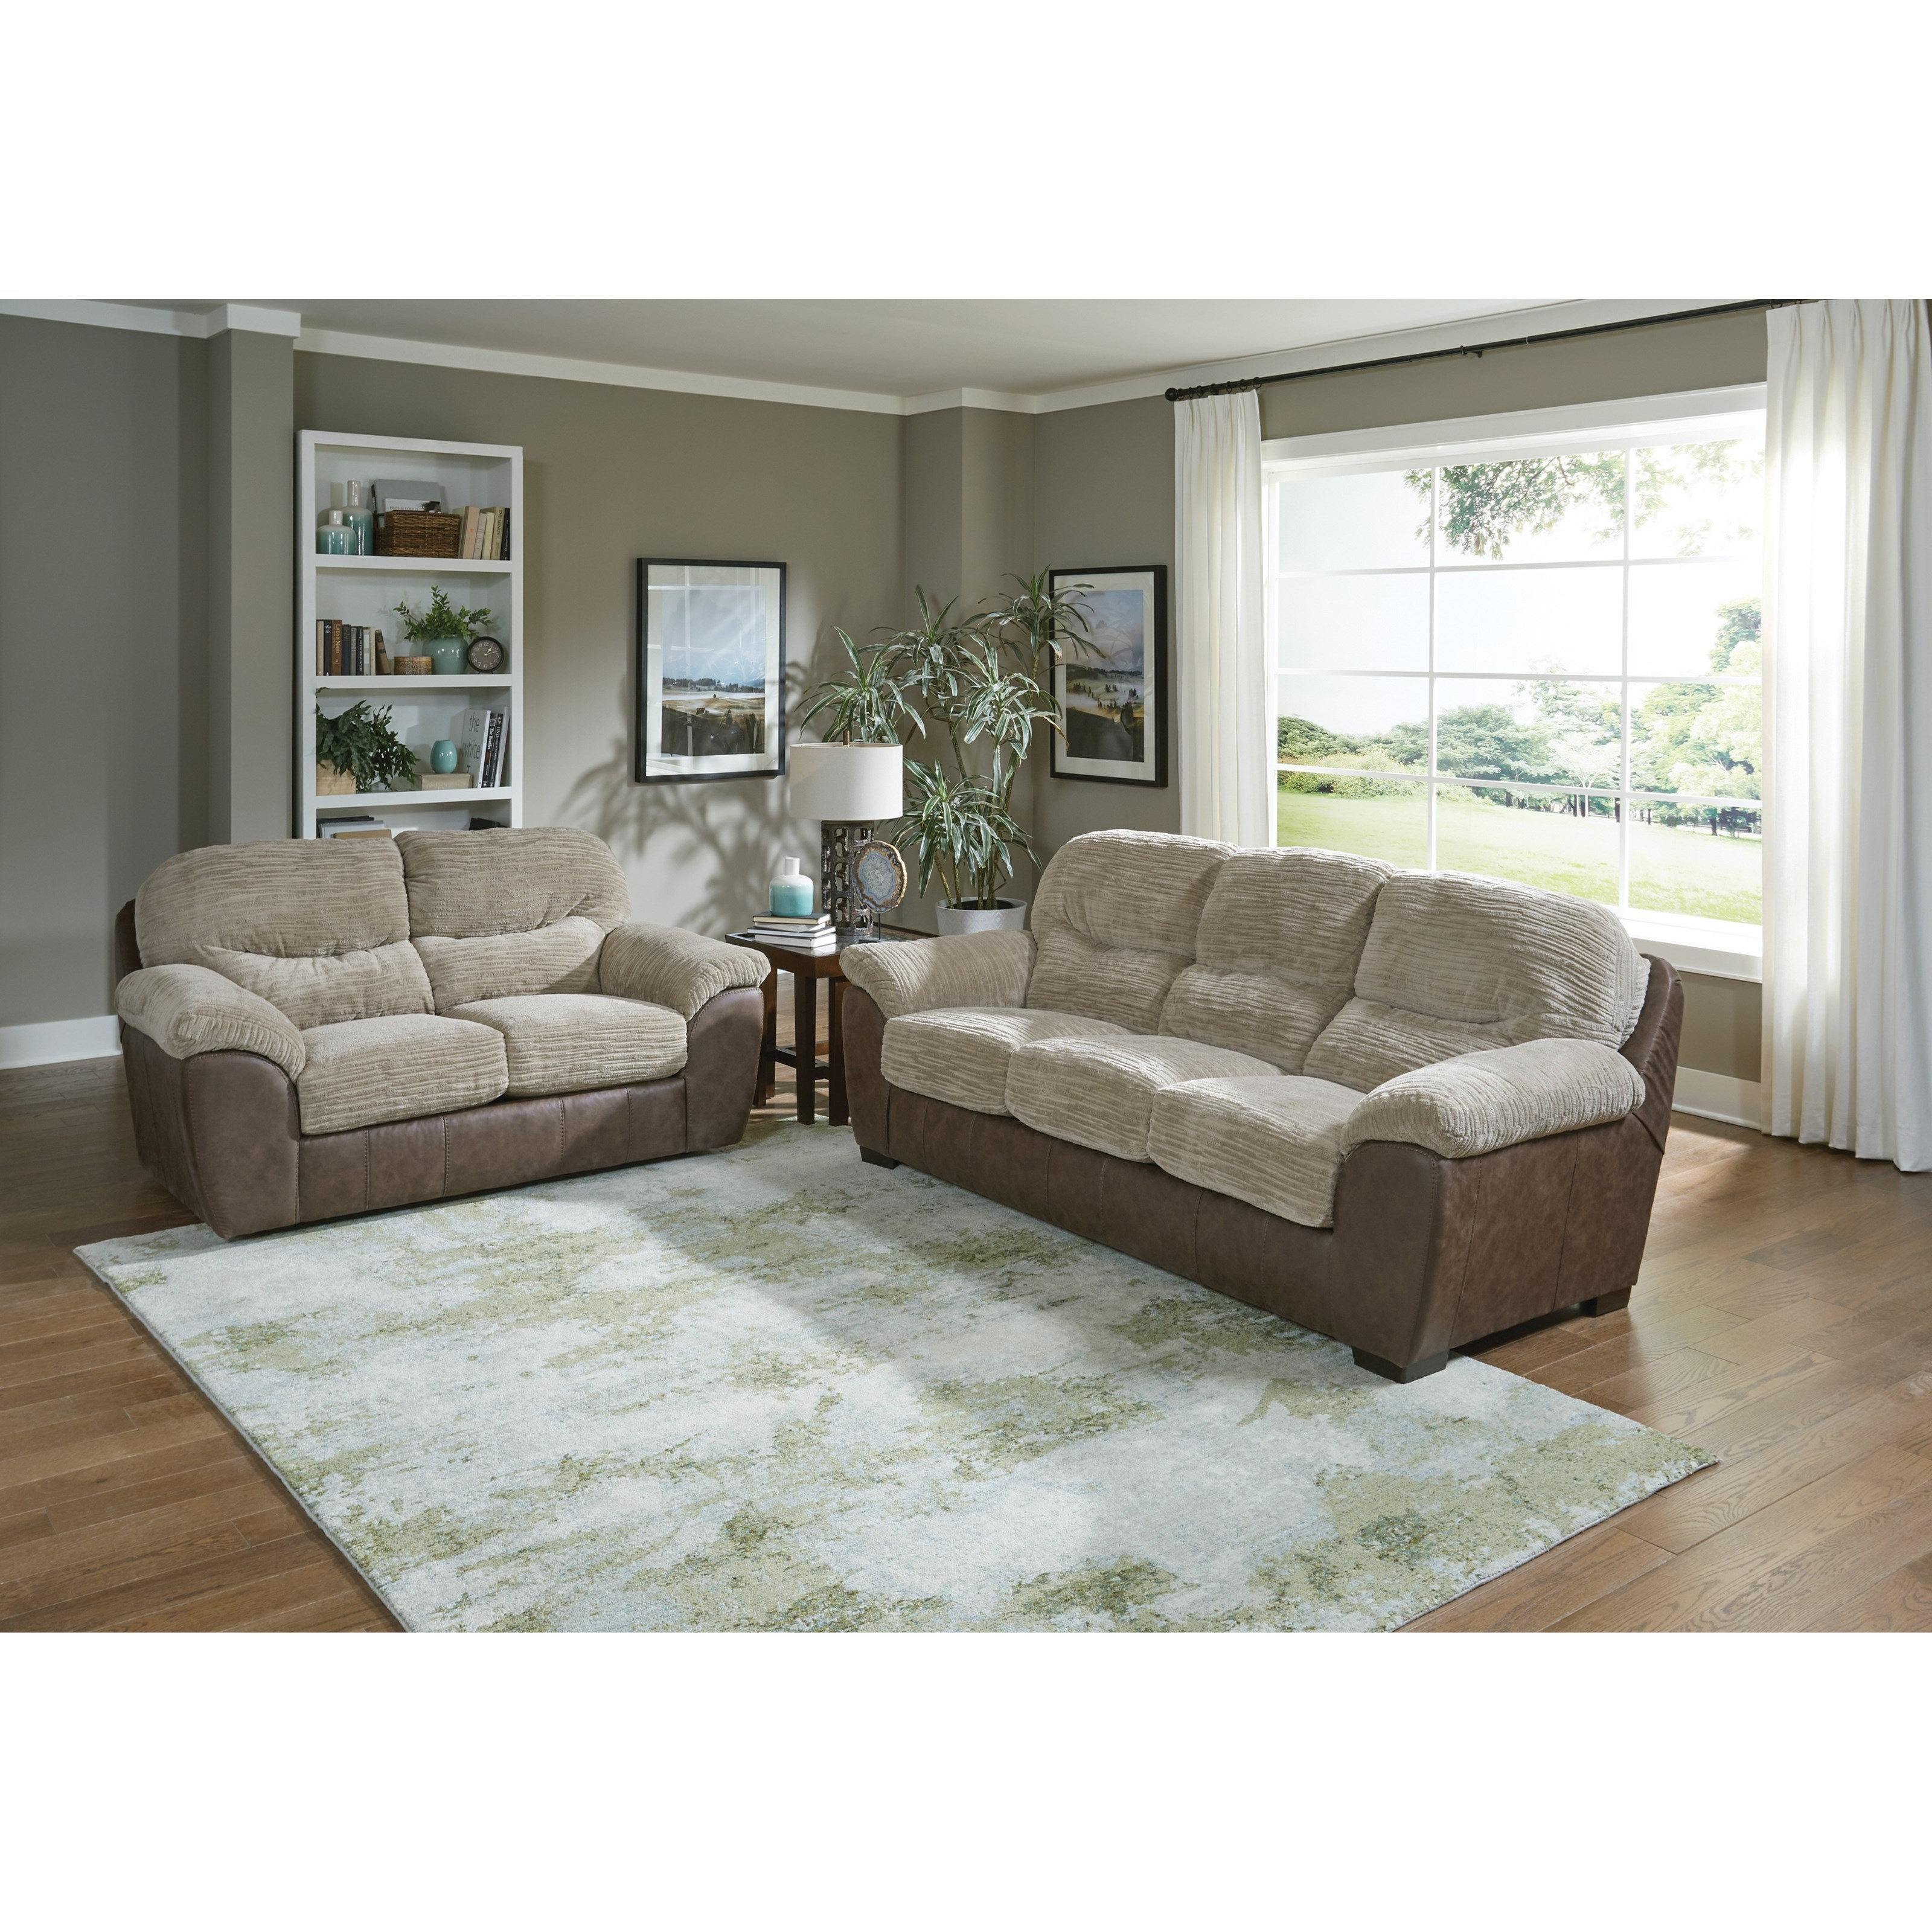 McMahon Living Room Group by Jackson Furniture at Lapeer Furniture & Mattress Center